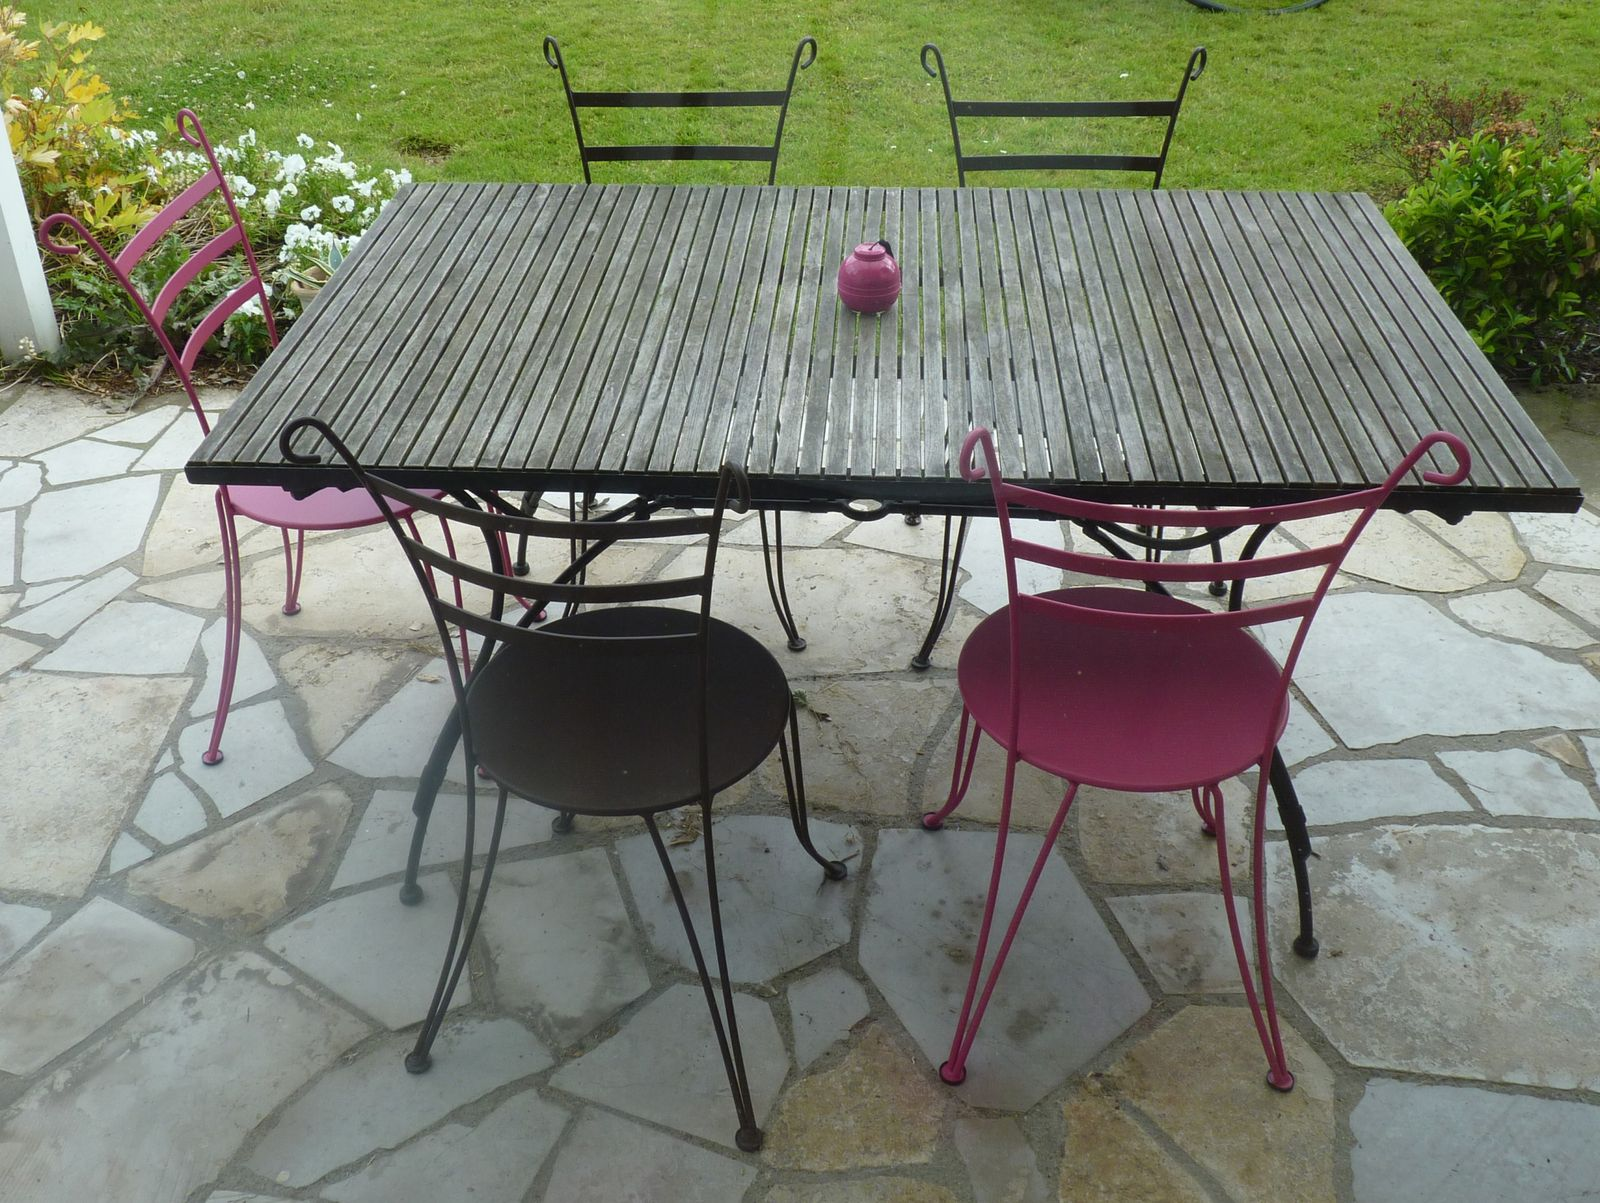 Chaises en fer forg fermob lido rouille fushia ou for Decoration jardin rouille